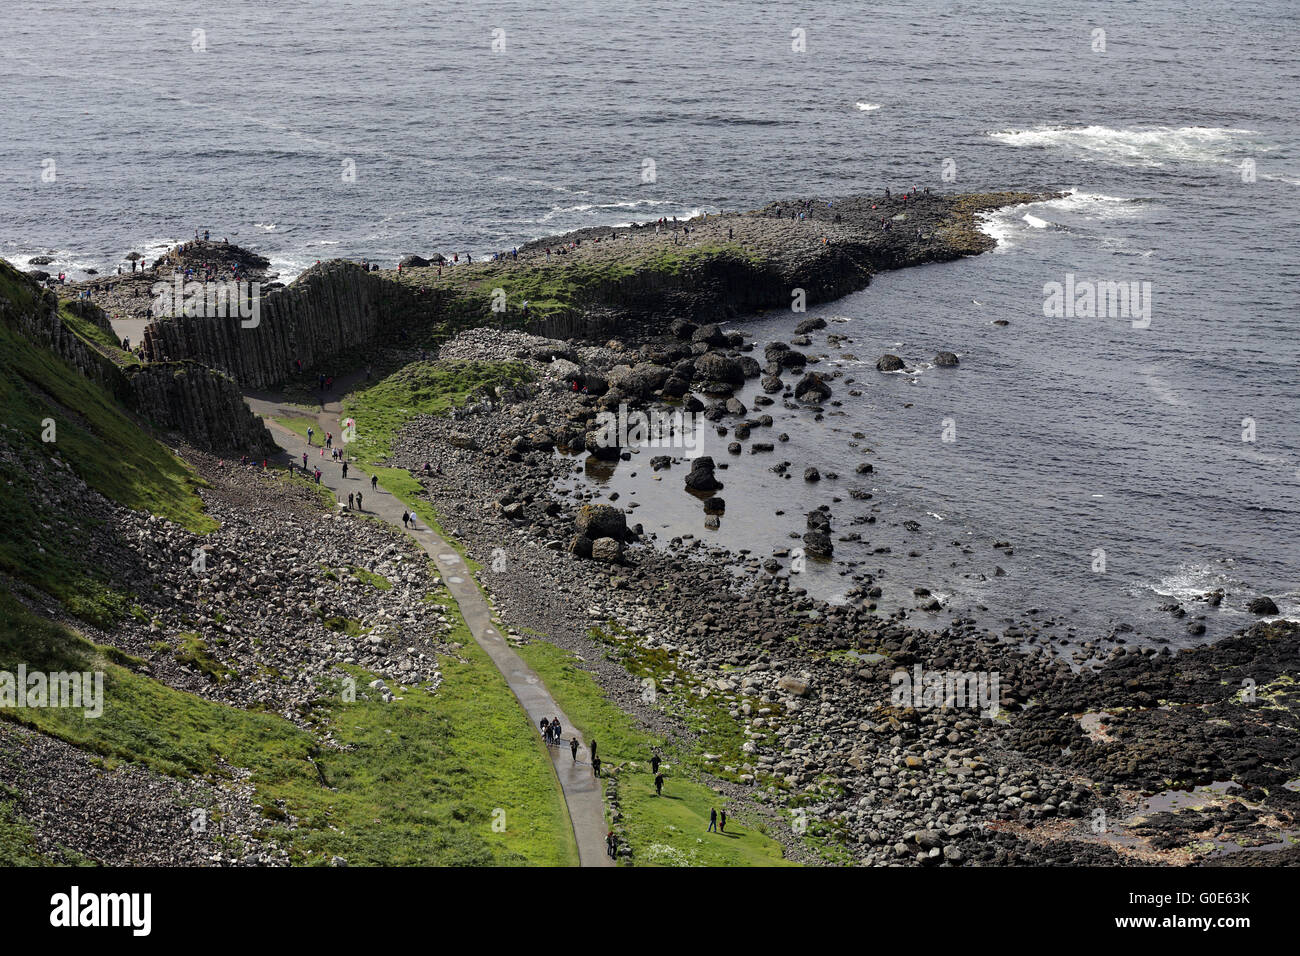 Giant's Causeway, County Antrim, Northern Ireland - Stock Image